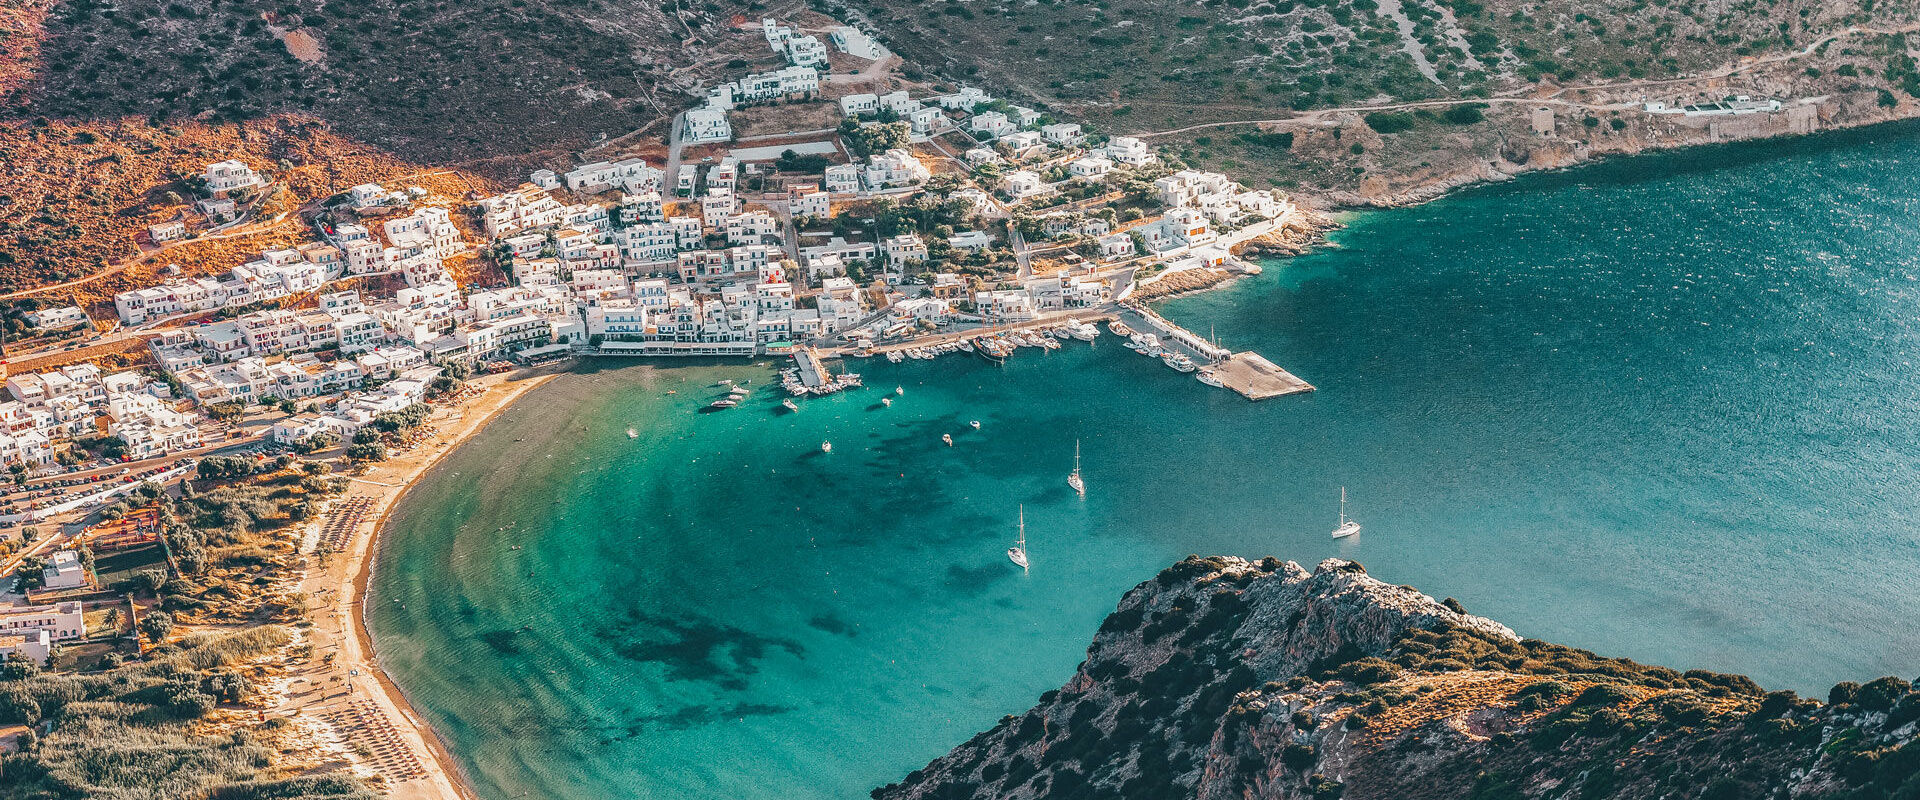 Kamares village, the main port of Sifnos island